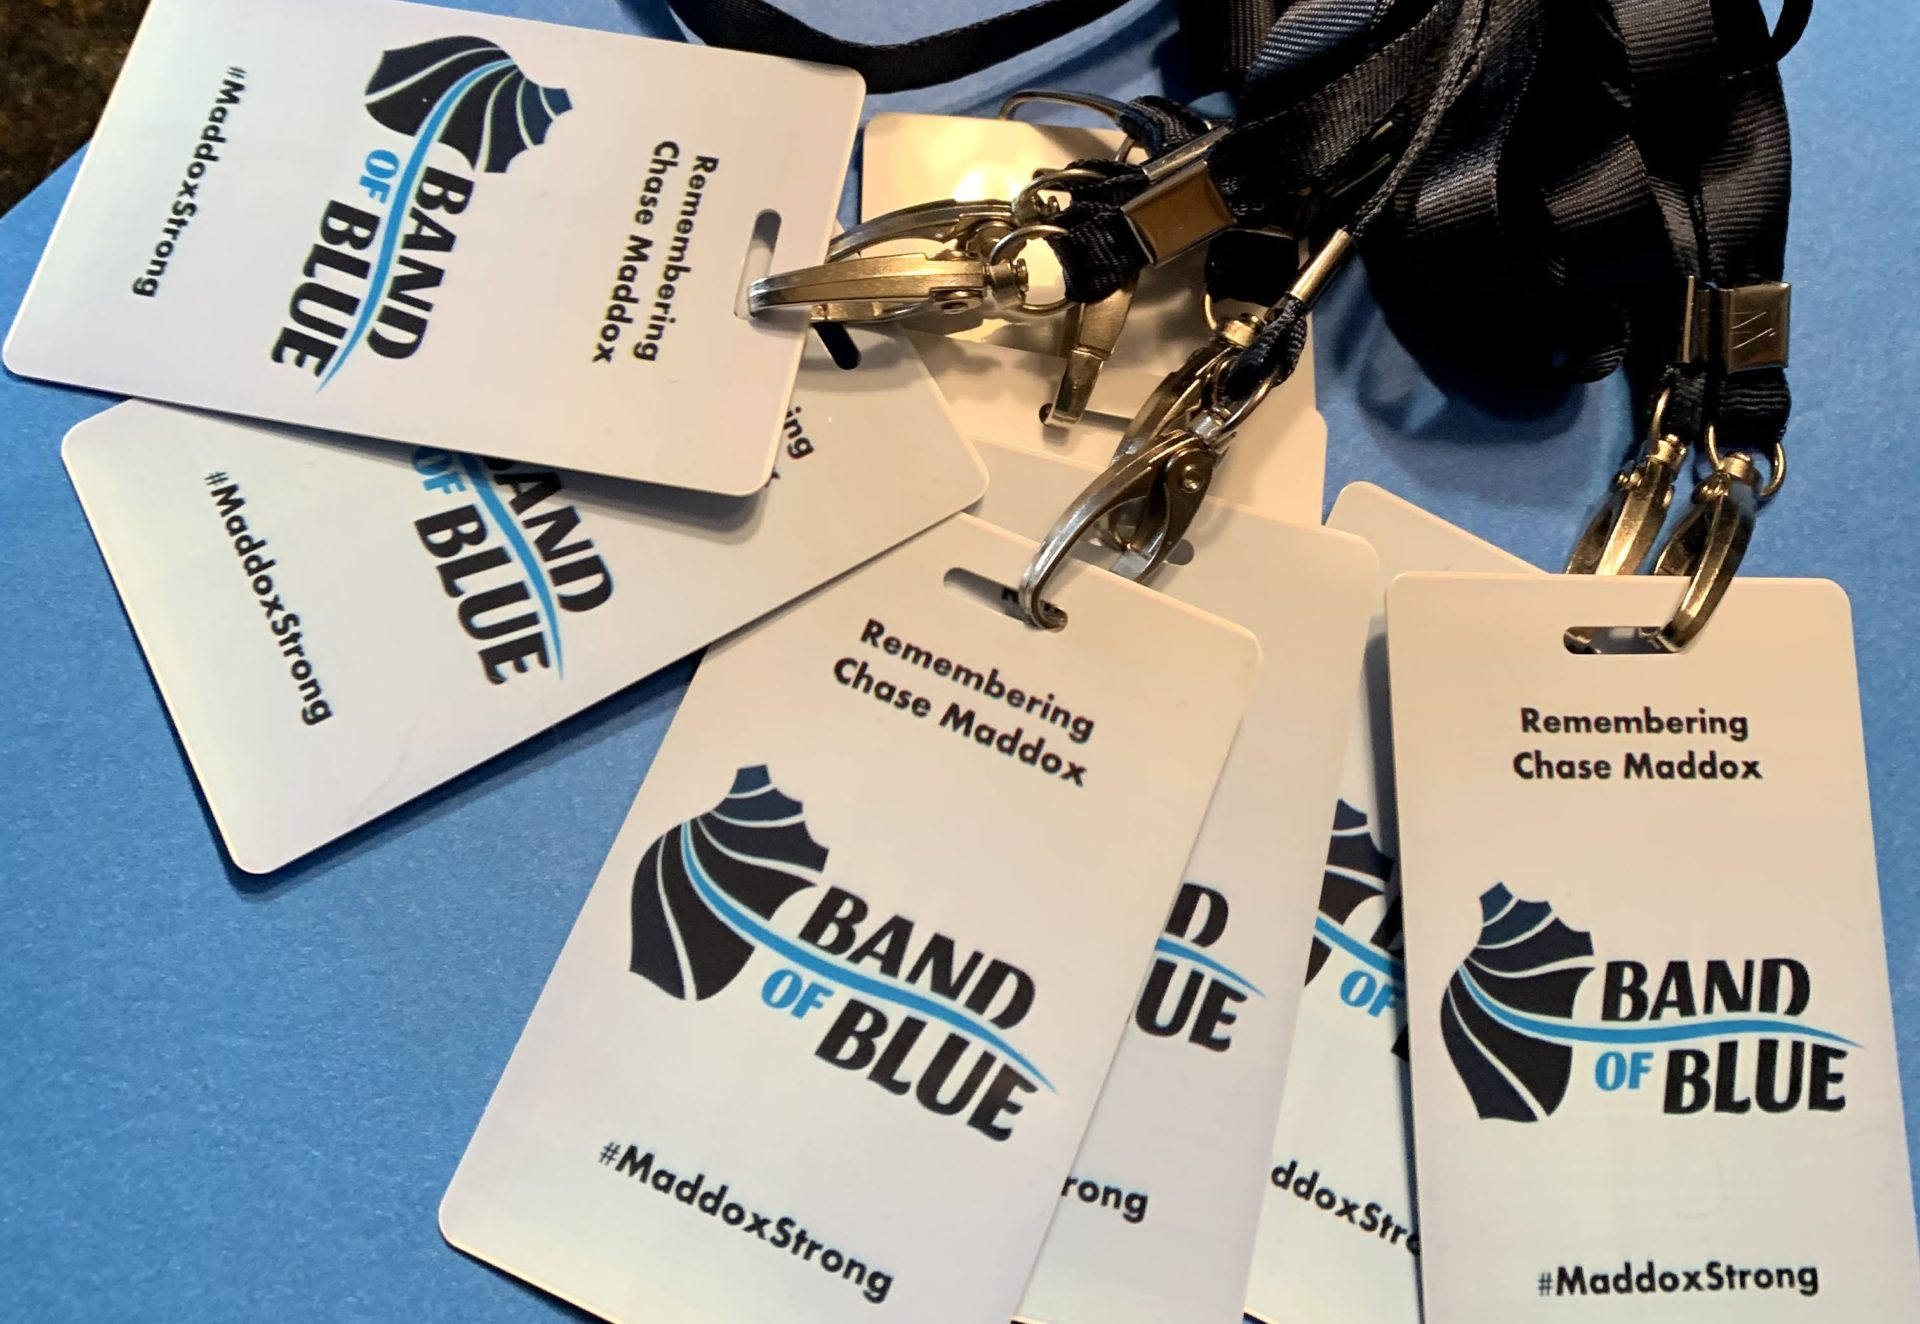 band of blue name tags